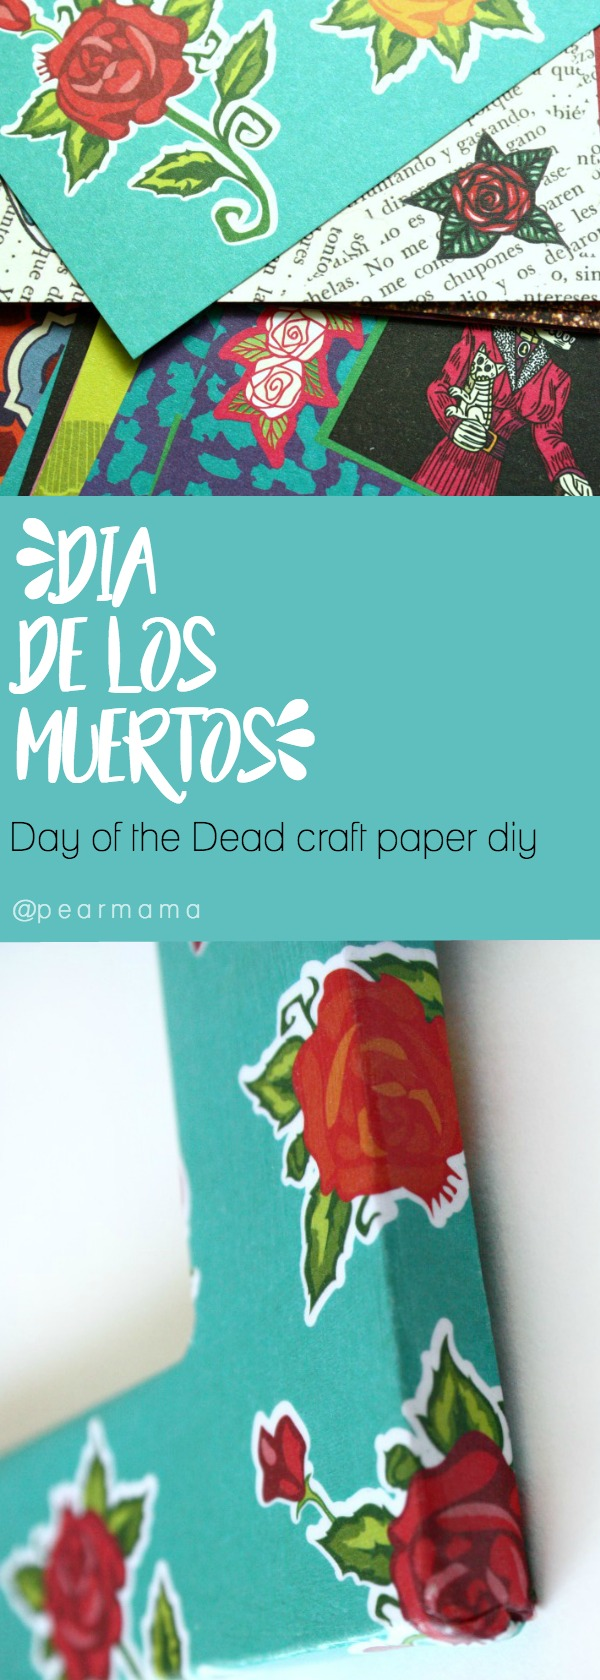 Here are three different ways to use the Day of the Dead craft paper from Crafty Chica in your everyday projects.